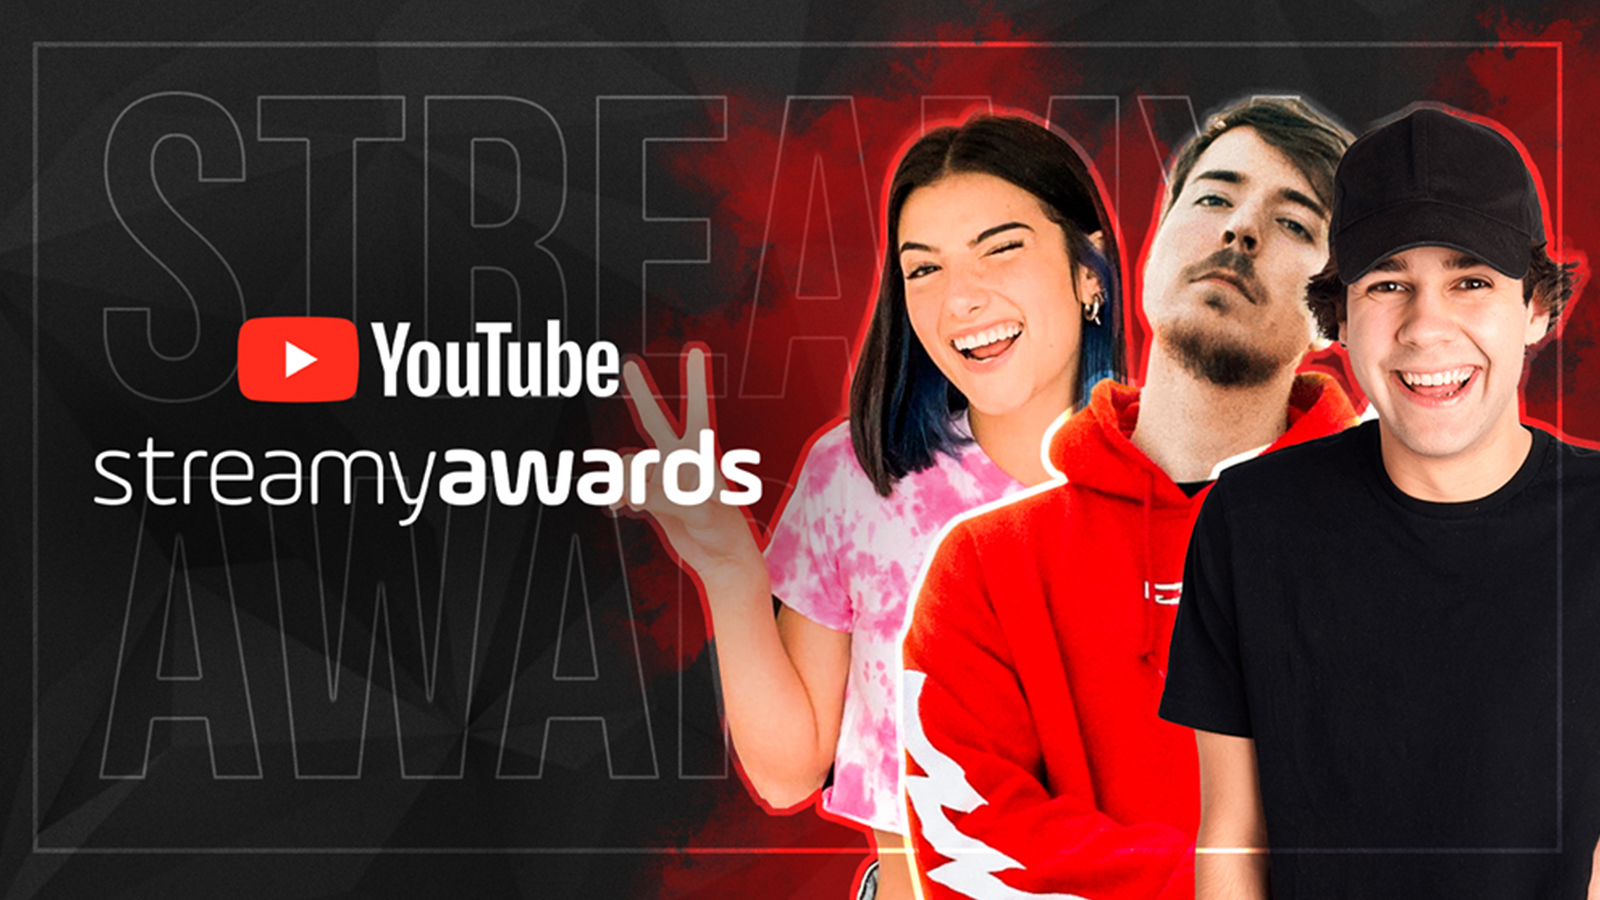 Mr Beast, David Dobrik, and Charli D'Amelio pose on a graphic featuring the Streamy Awards logo.